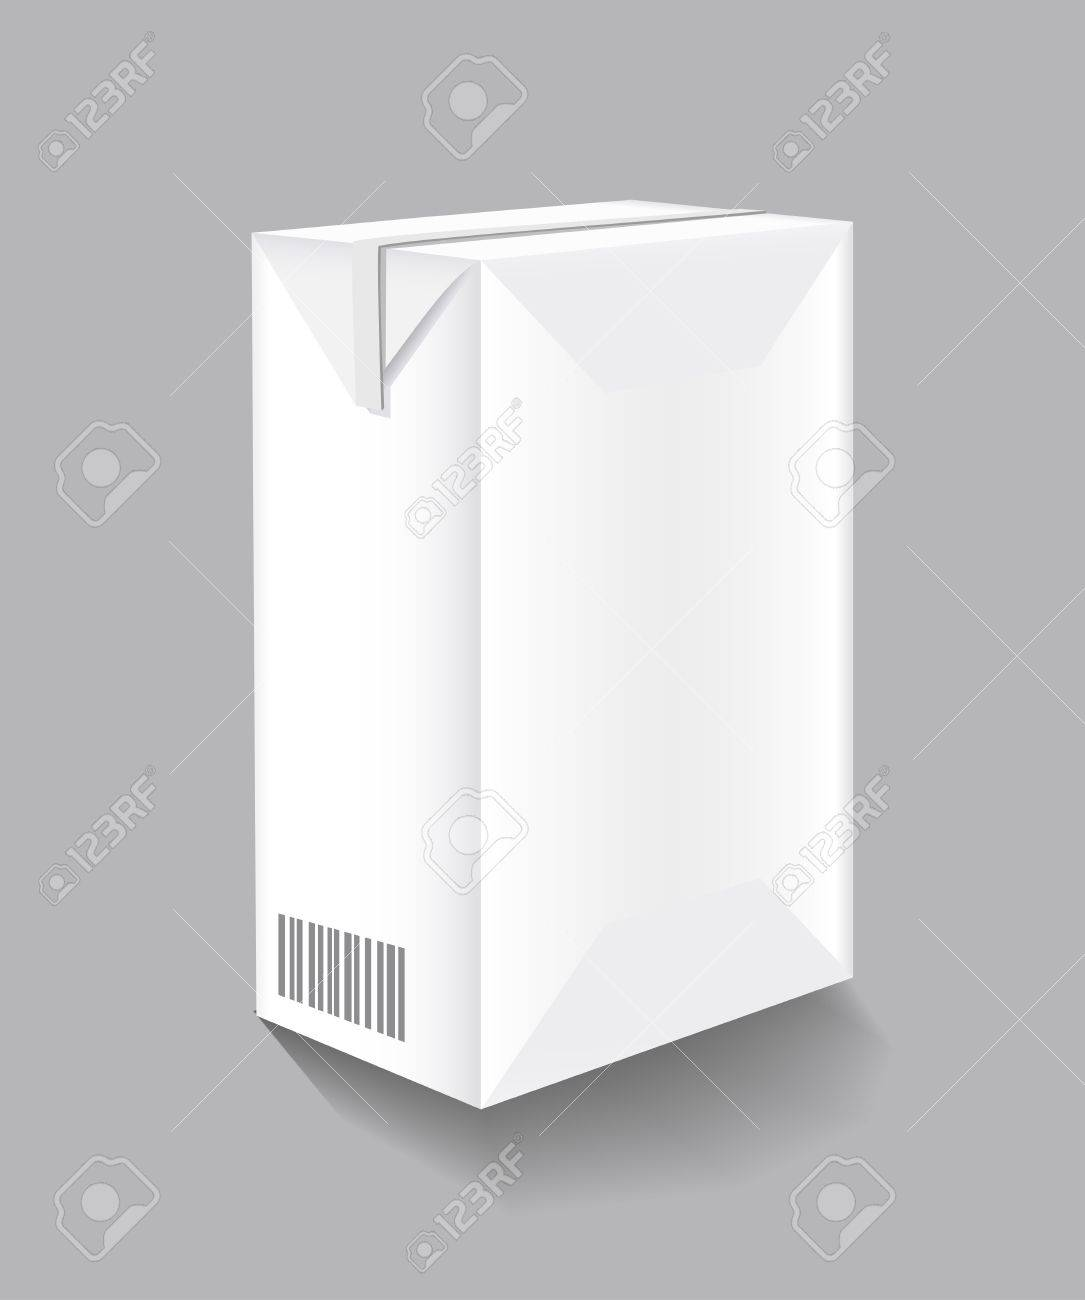 Packaging of milk is shown in the picture Stock Vector - 9230562